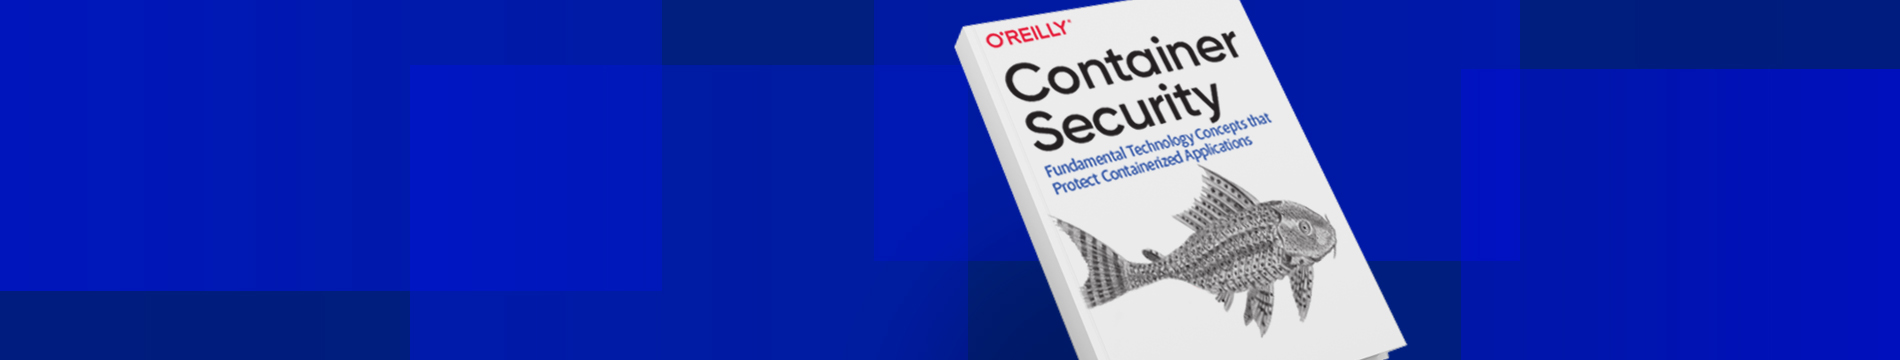 OReilly Book Container Security